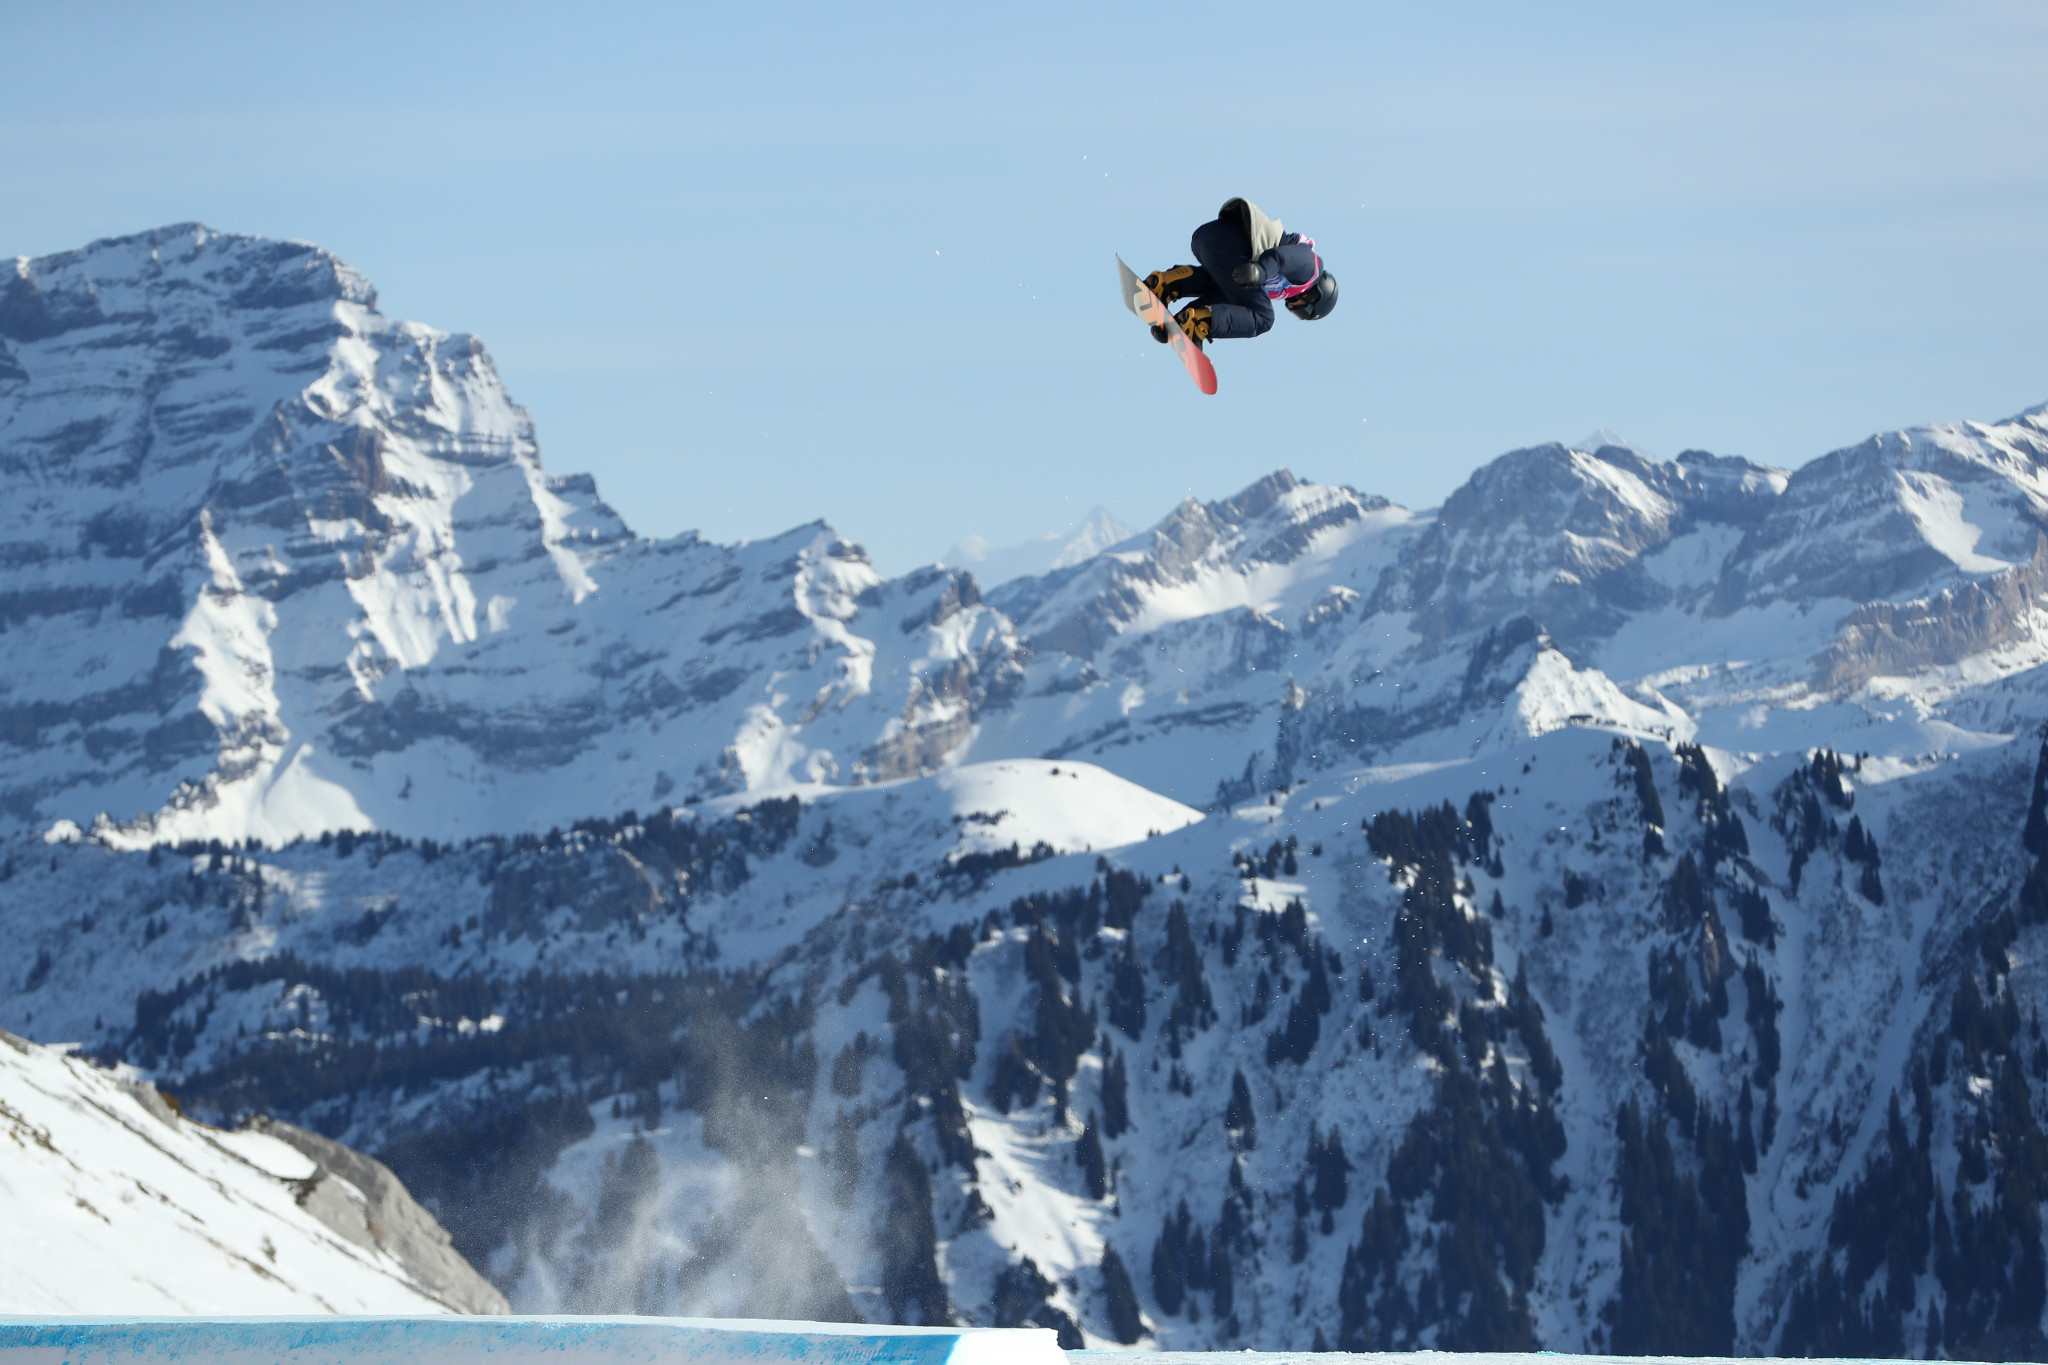 Japanese snowboarders conquer Winter Youth Olympic Big Air events